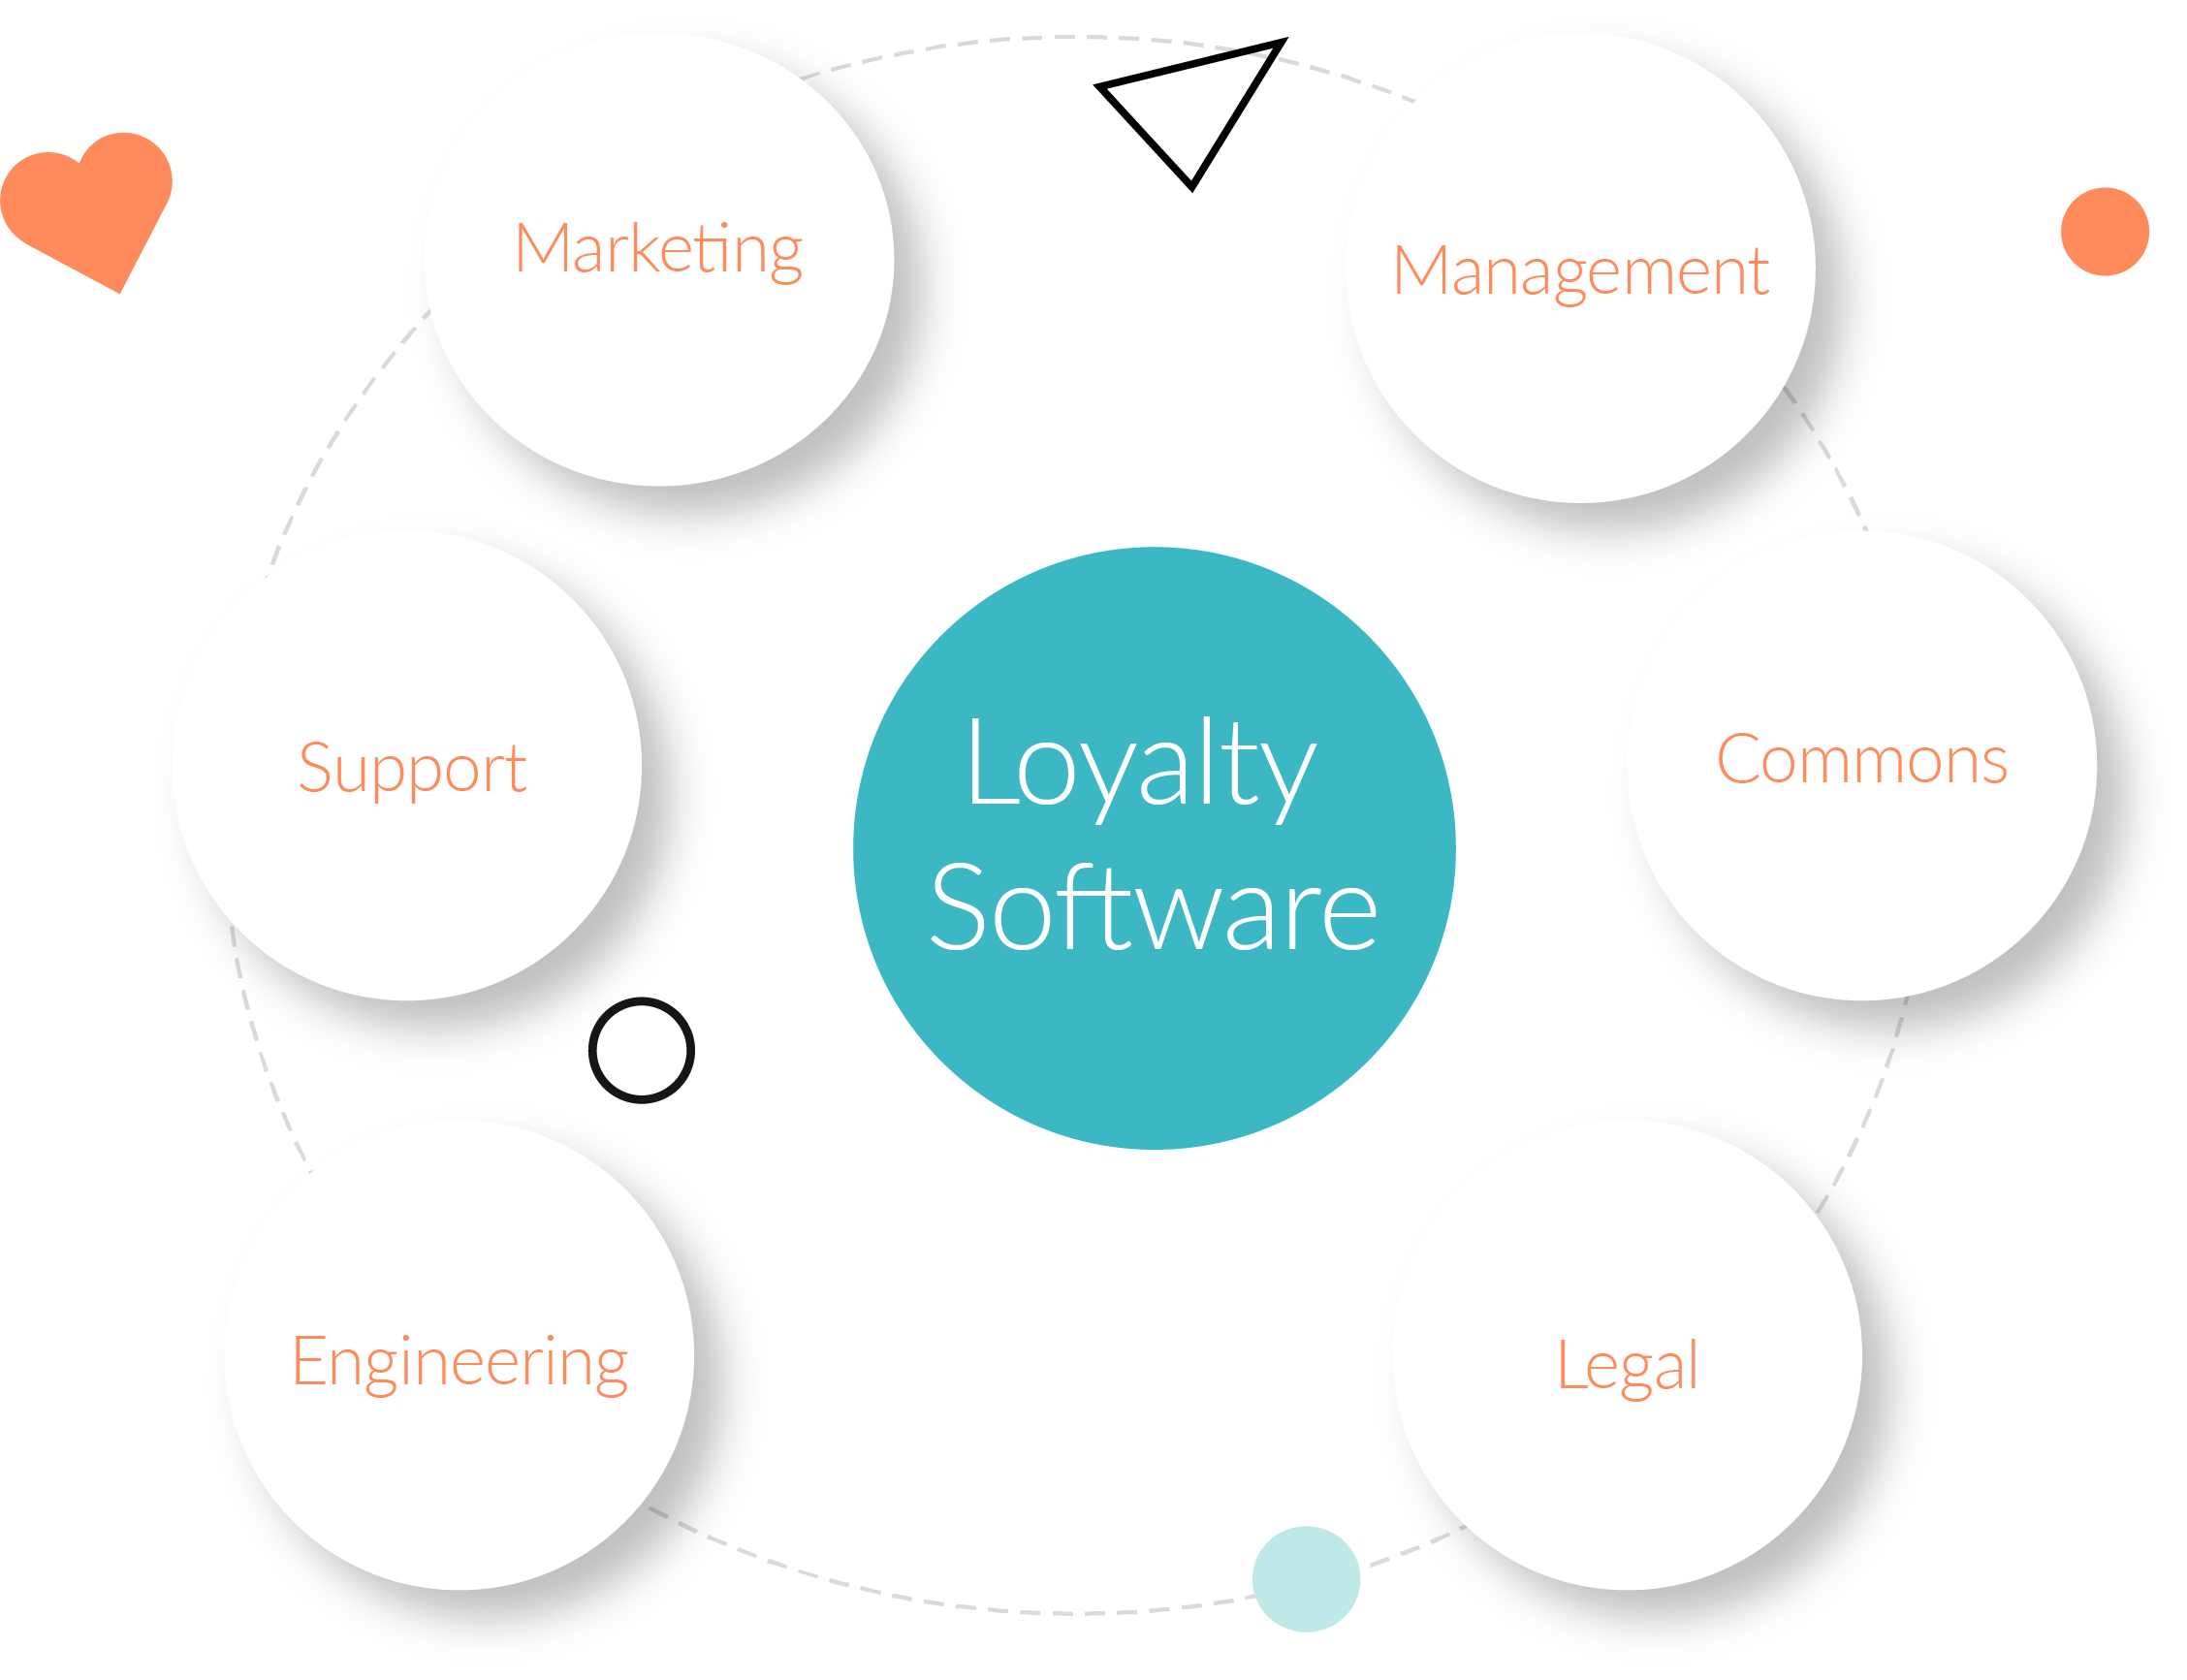 Loyalty Software versus many departments